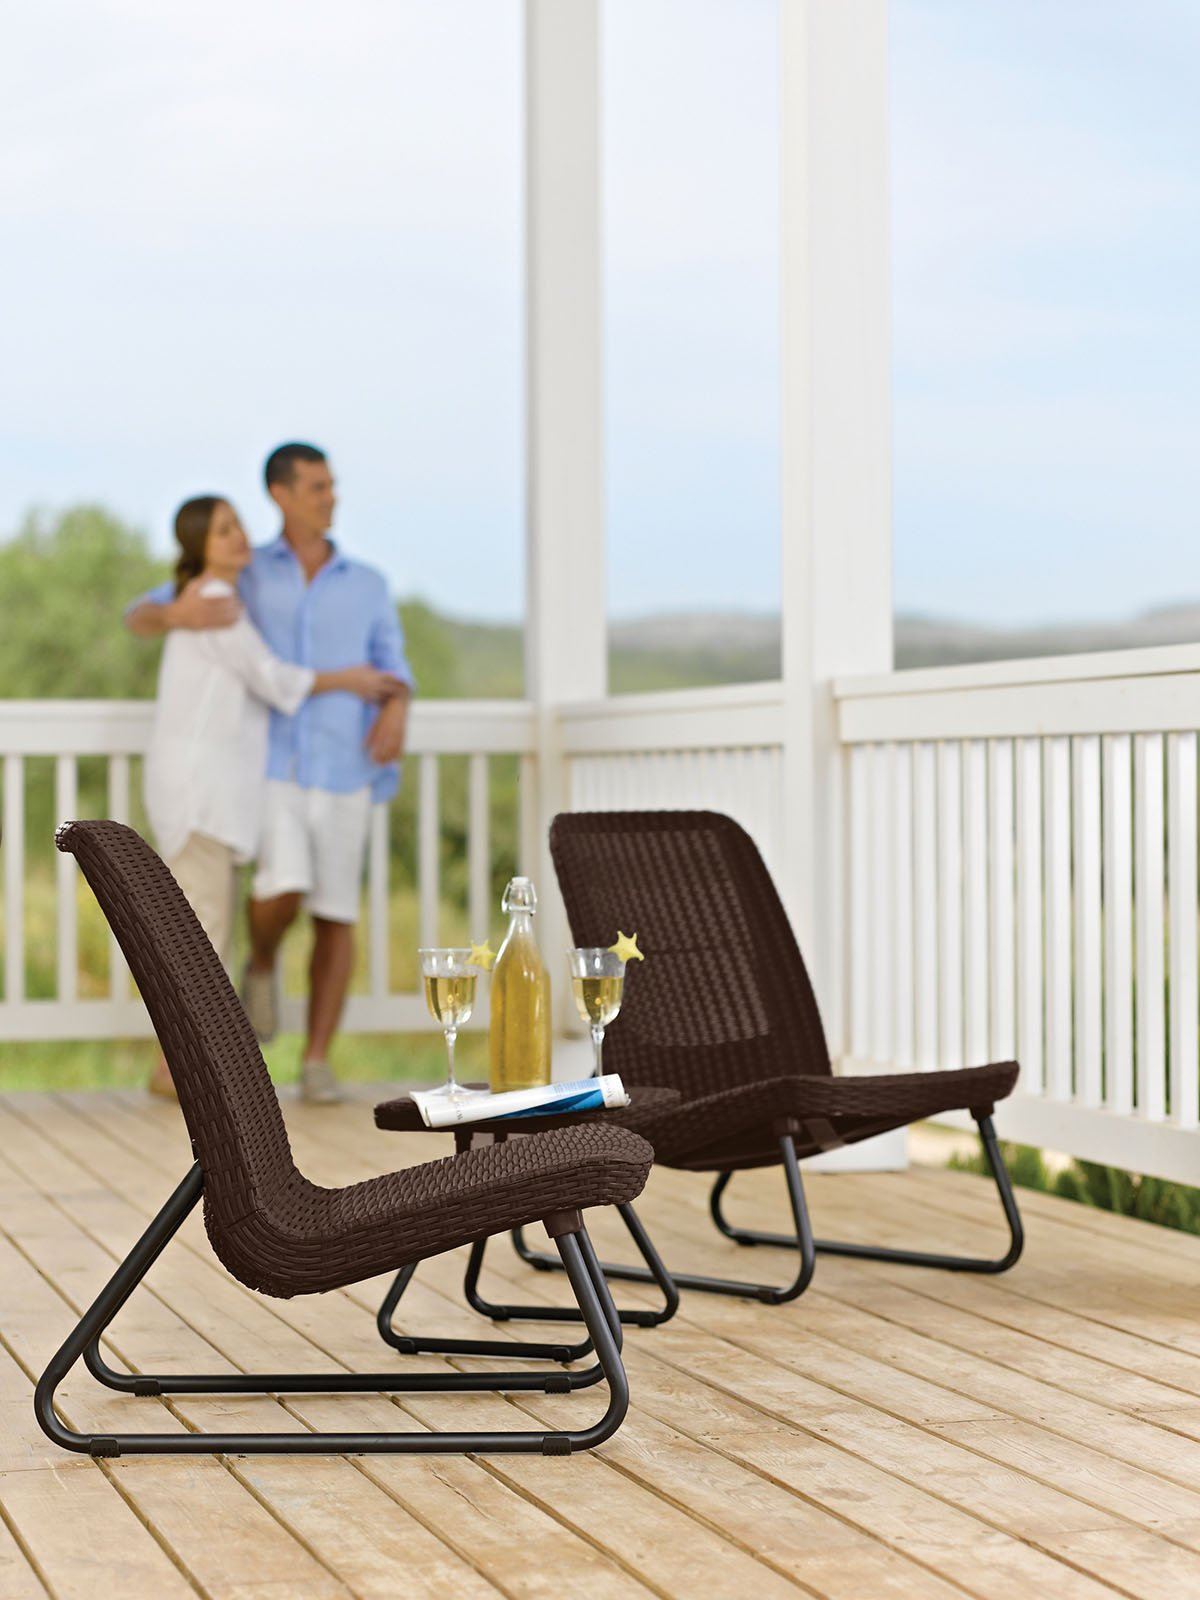 Keter Rio 3 Pc All Weather Outdoor Patio Garden Conversation Chair & Table Set Furniture, Brown by Keter (Image #13)